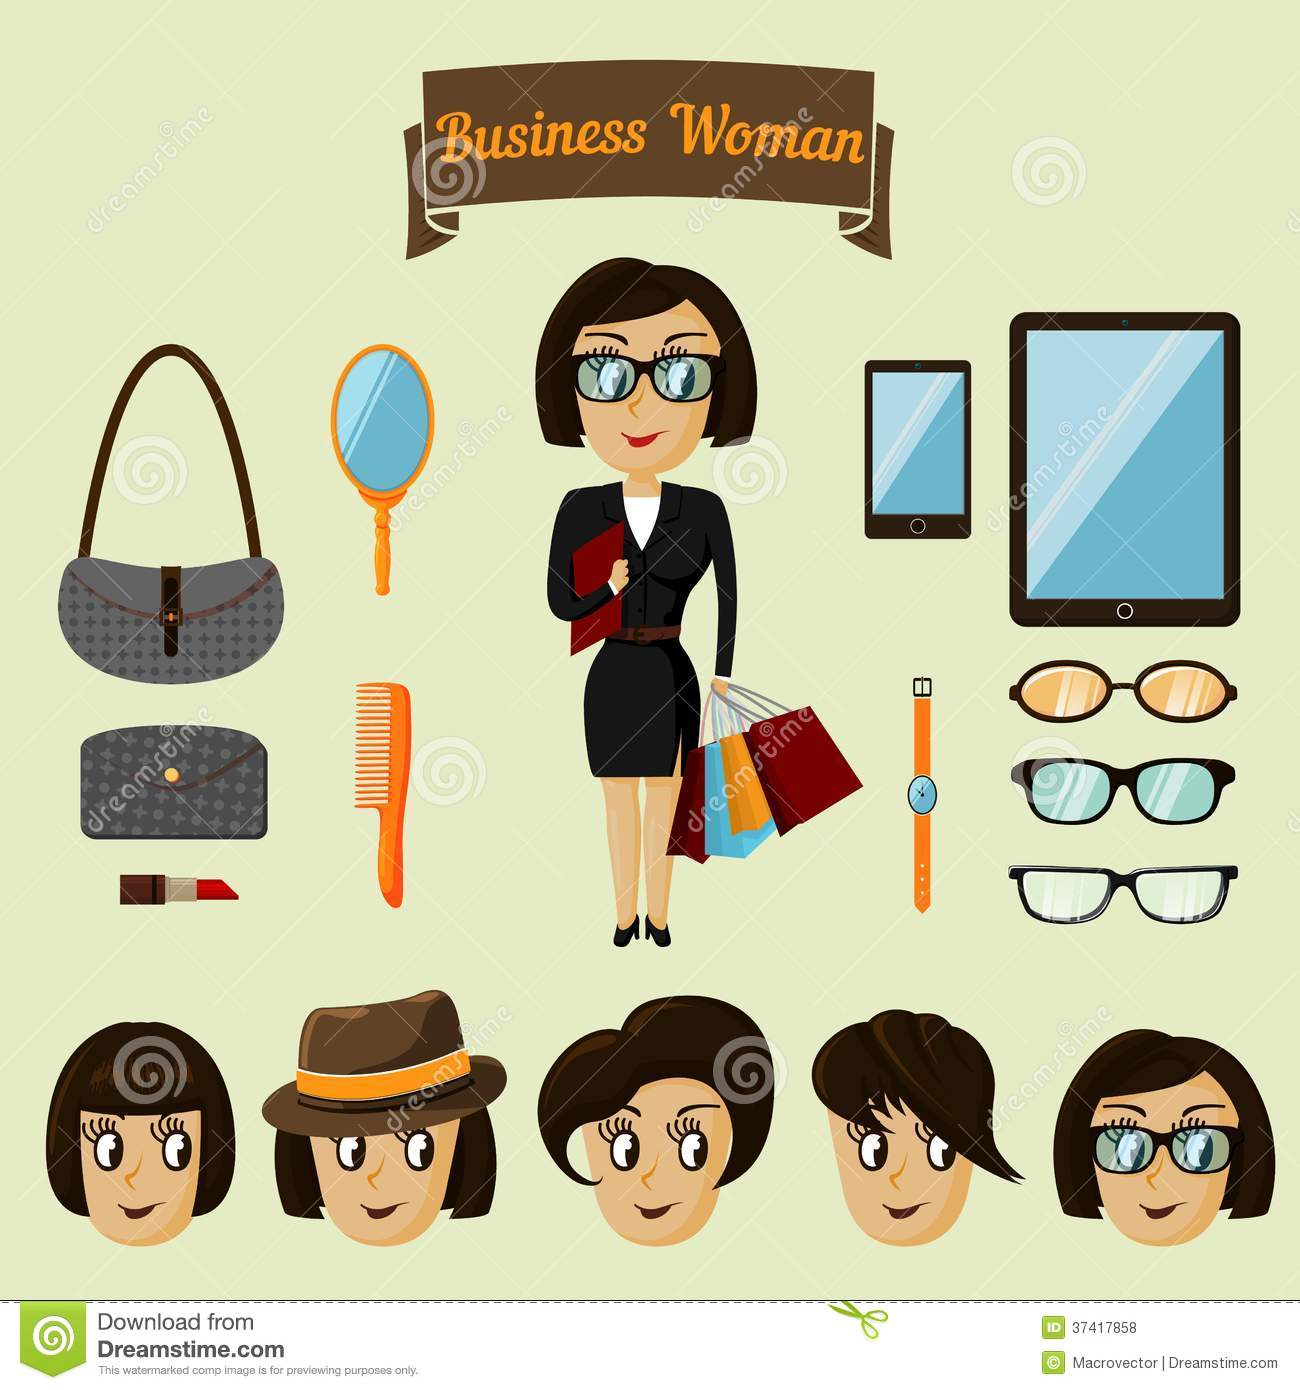 d77691c253341 Royalty-Free Stock Photo. Hipster character pack for business woman